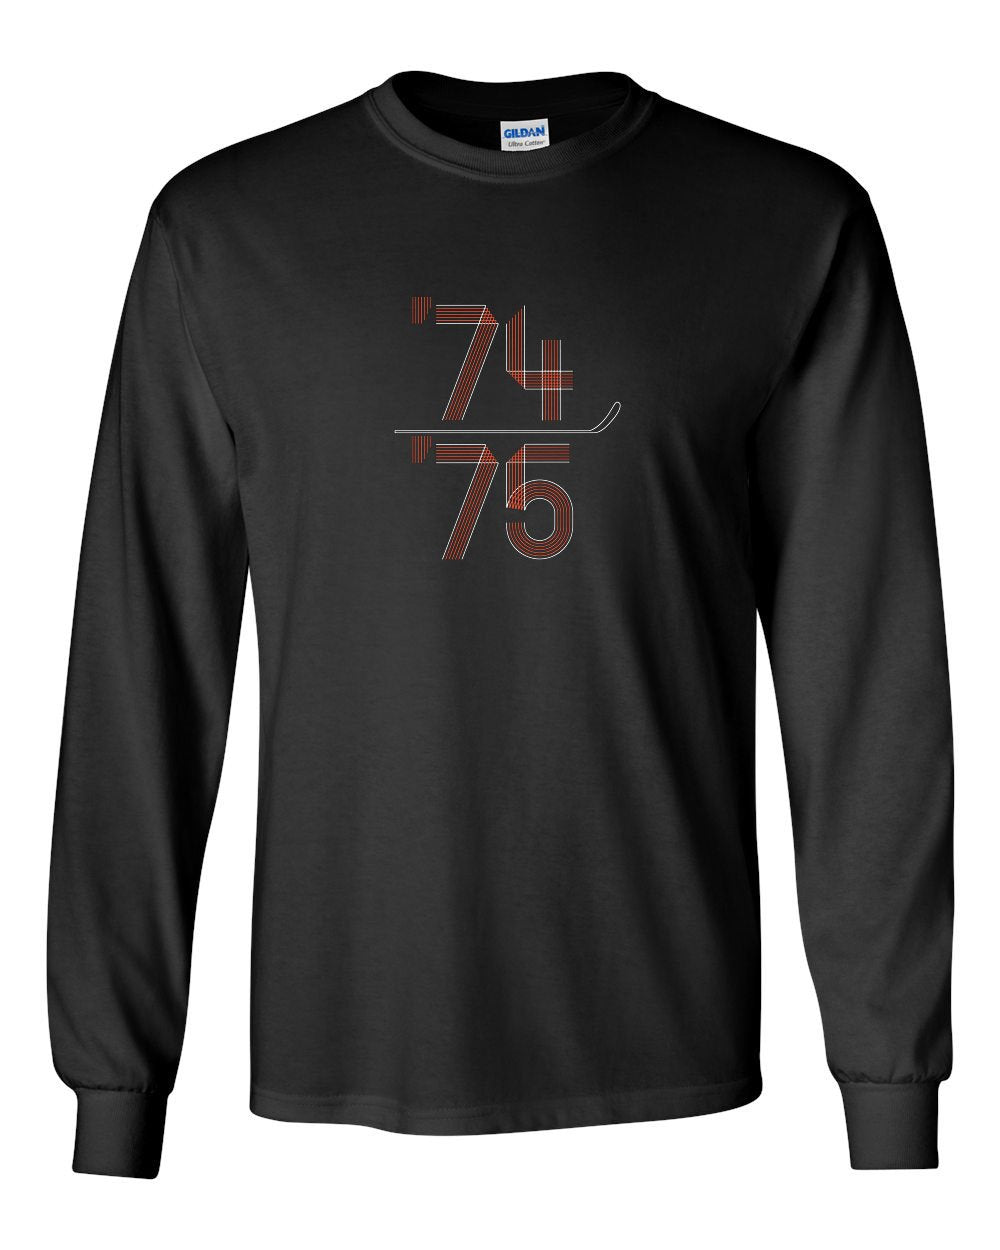 74-75 MENS Long Sleeve Heavy Cotton T-Shirt